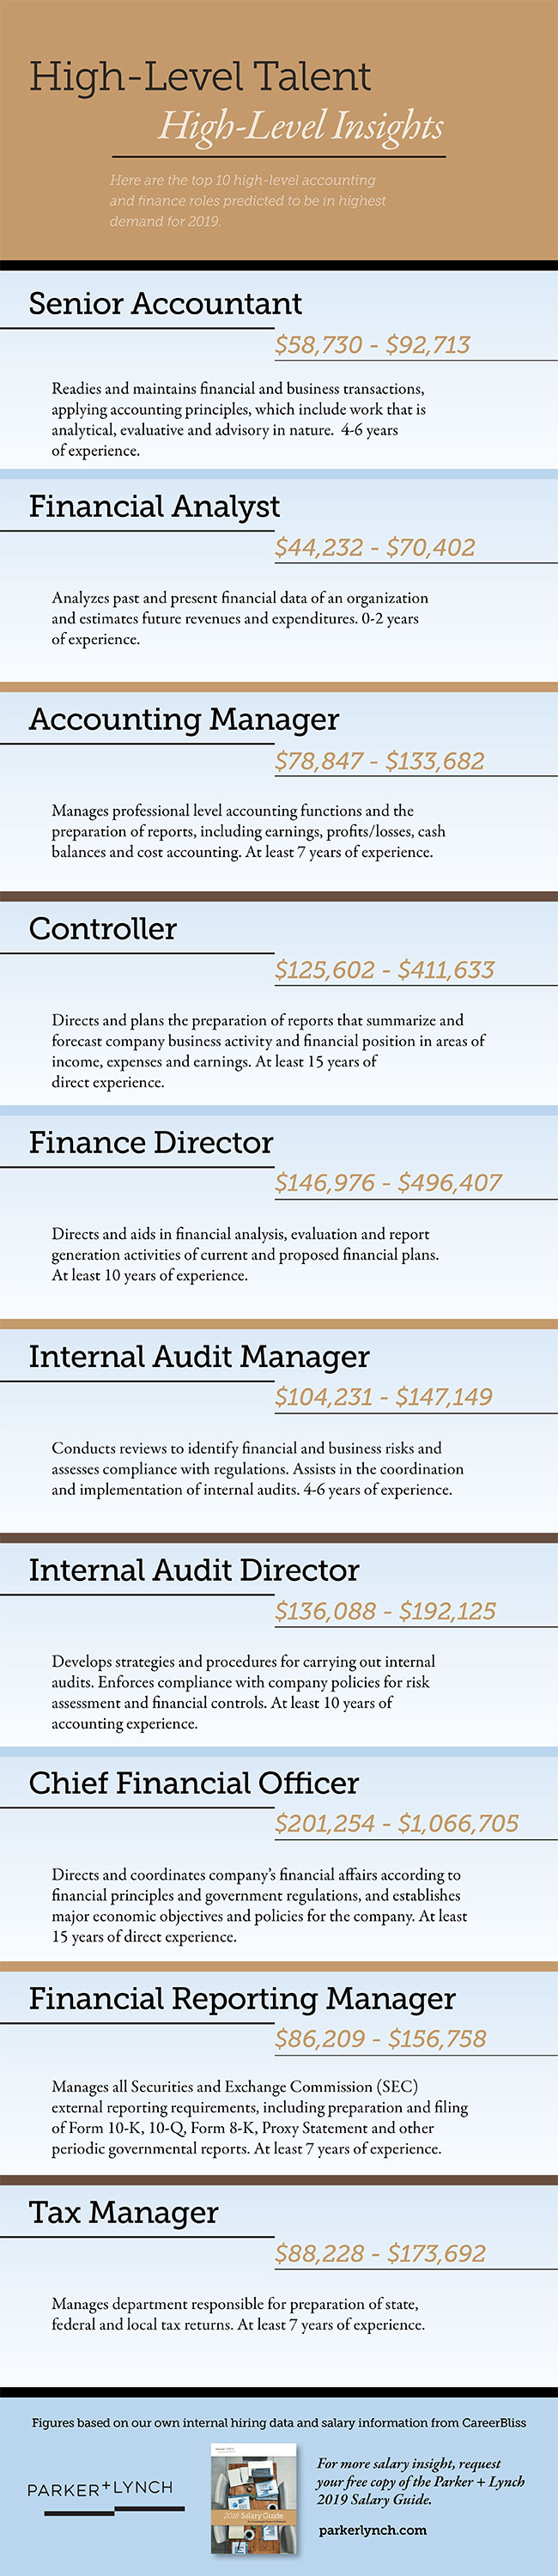 Top 10 Finance Jobs Infographic